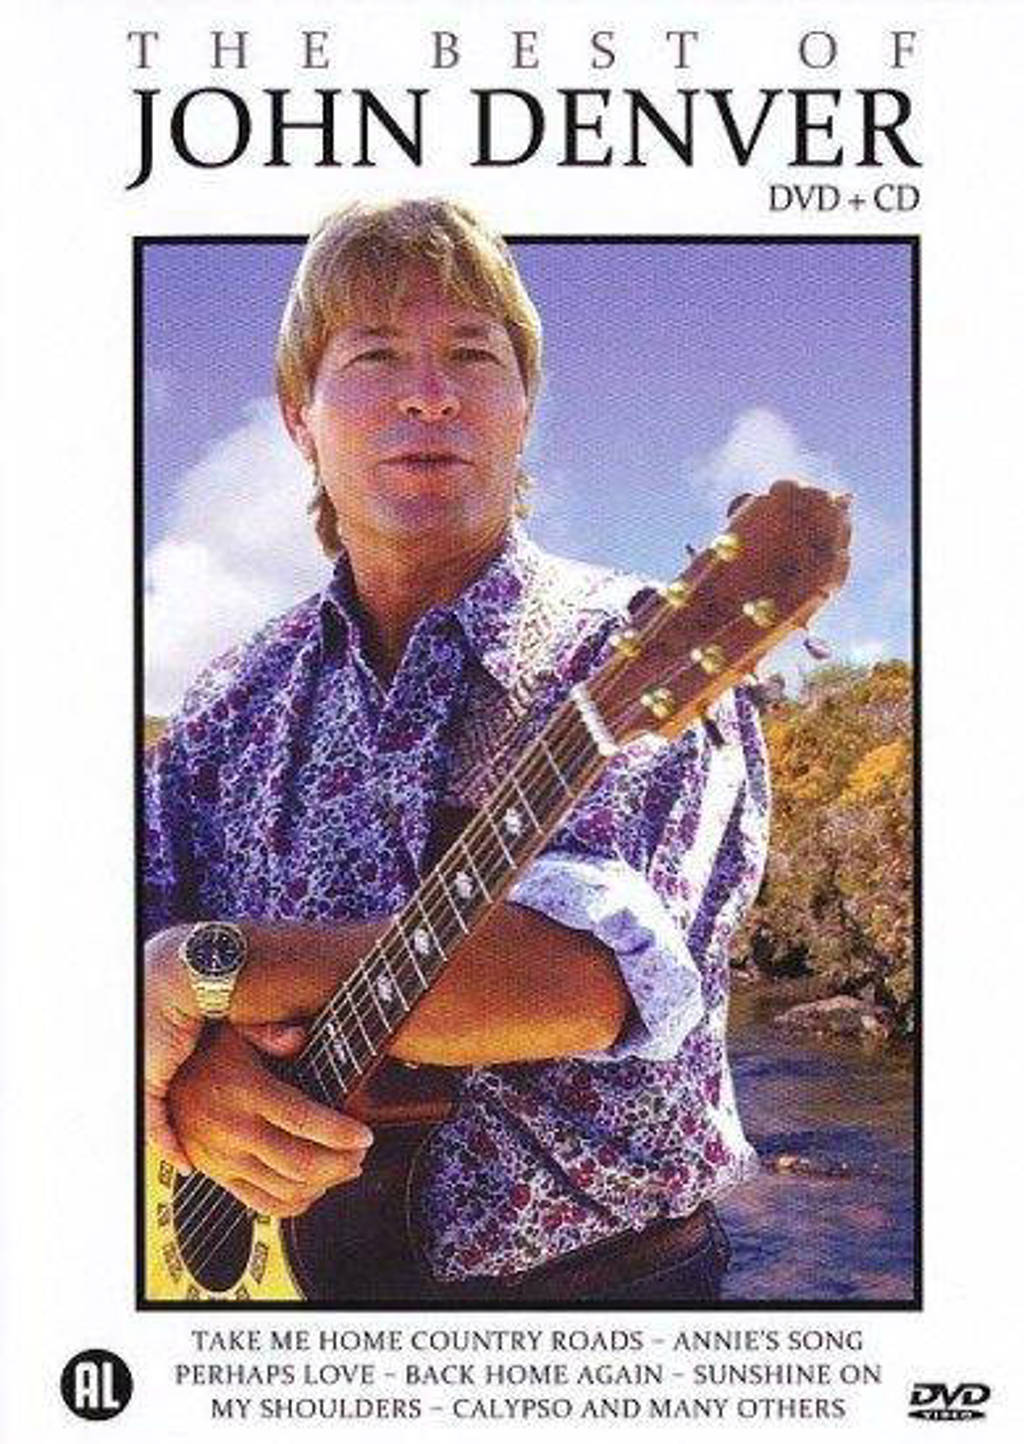 John Denver - The best of (DVD)